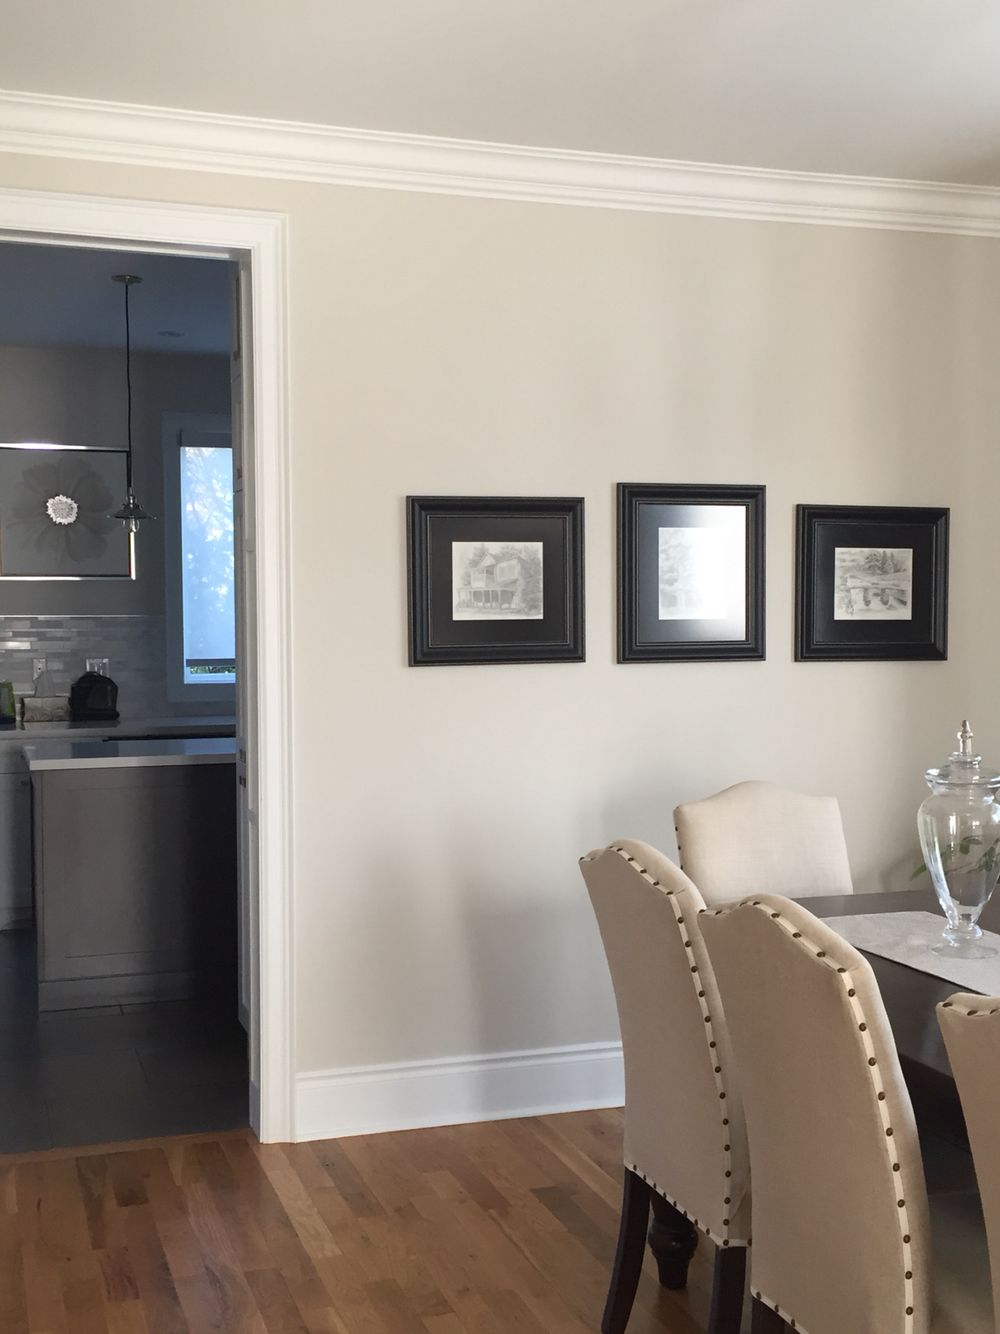 Bm pale oak great soft grey to go with light brown for Soft brown paint colors